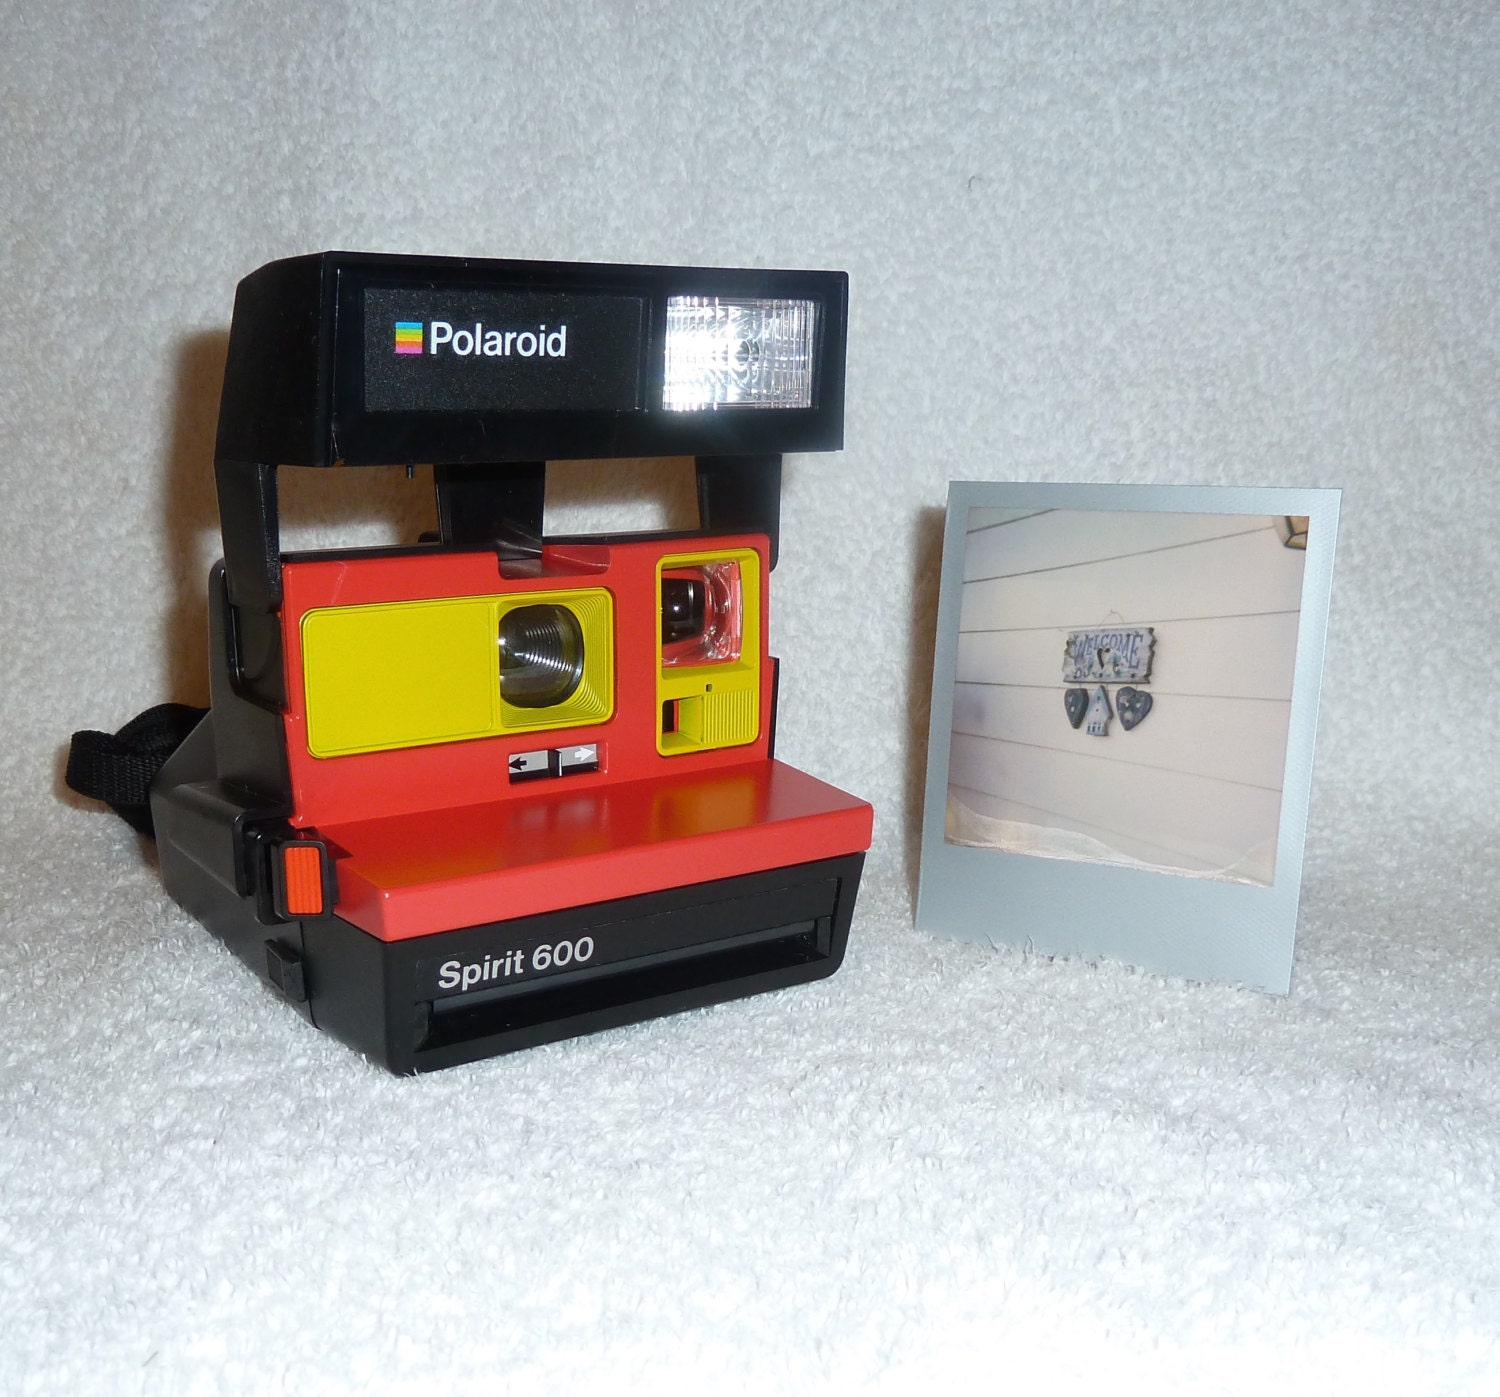 spirit 600 polaroid camera upcycled with red and yellow. Black Bedroom Furniture Sets. Home Design Ideas